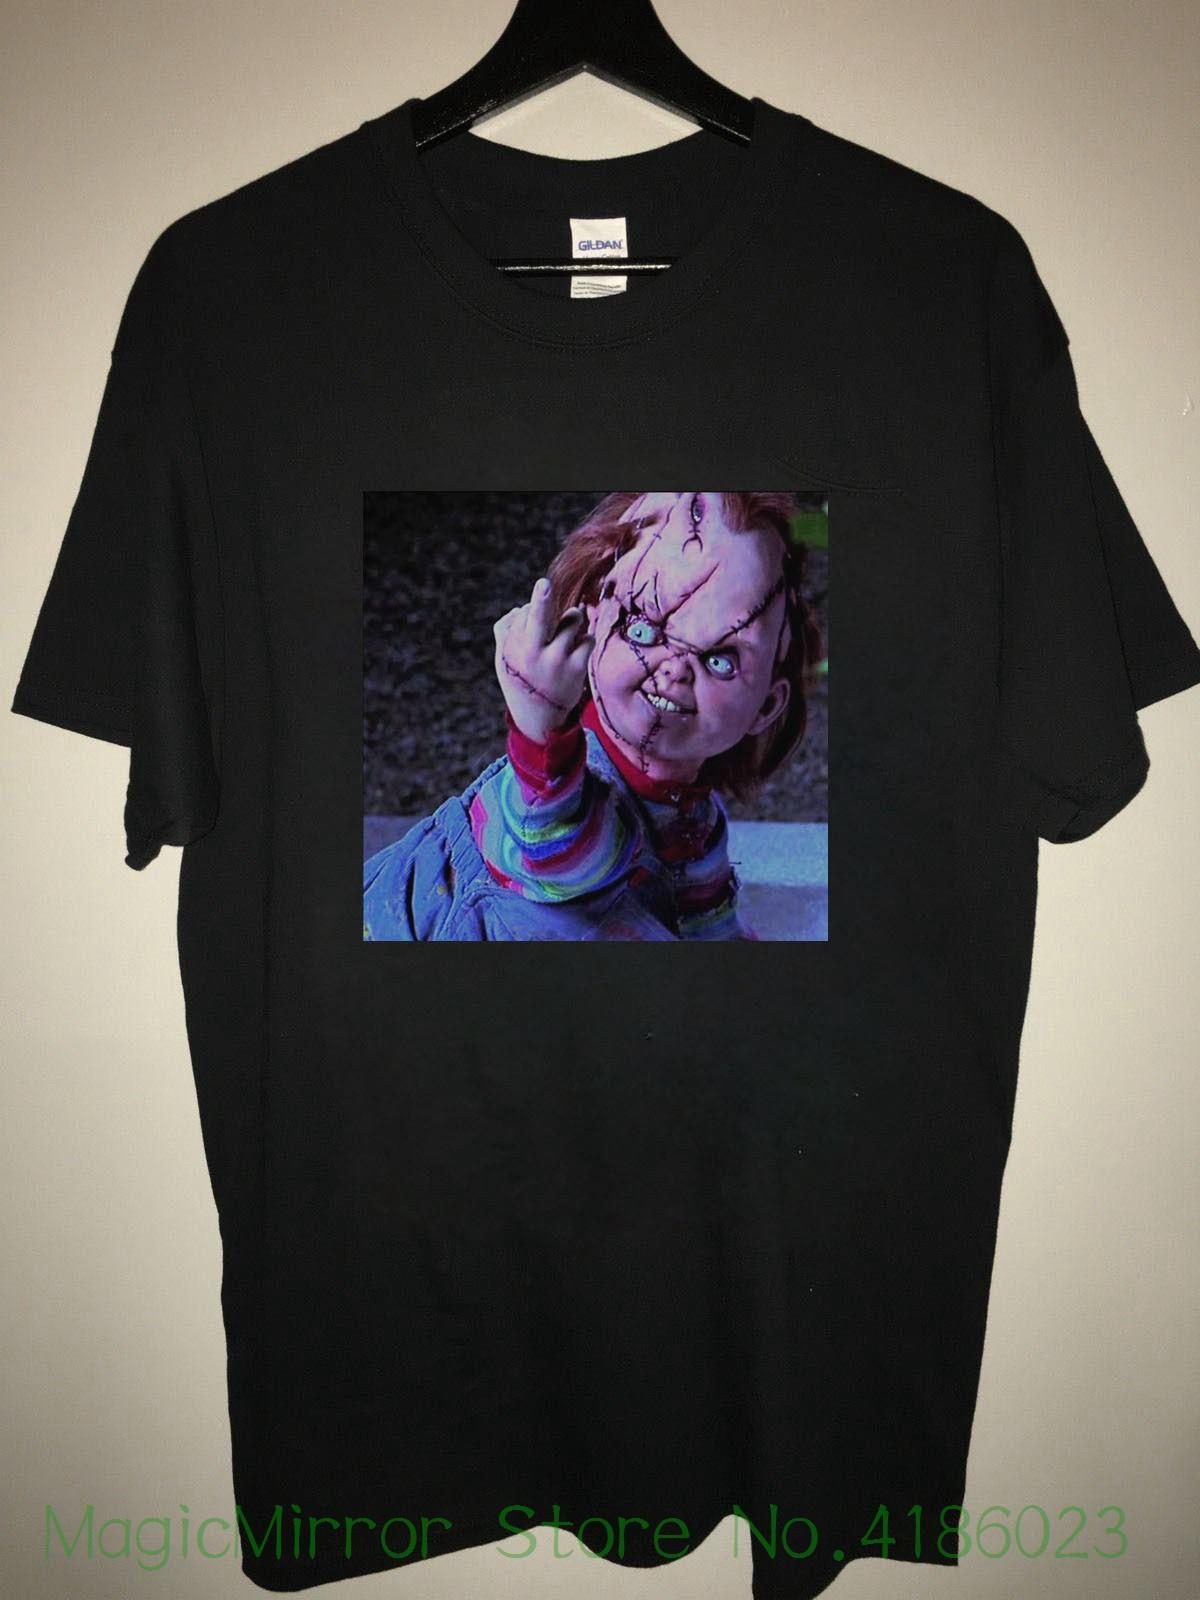 05e144b492896 Chucky T Shirt ; Child s Play Chucky Tee Shirt New Brand Sleeve Tee Shirt  Homme Tshirt